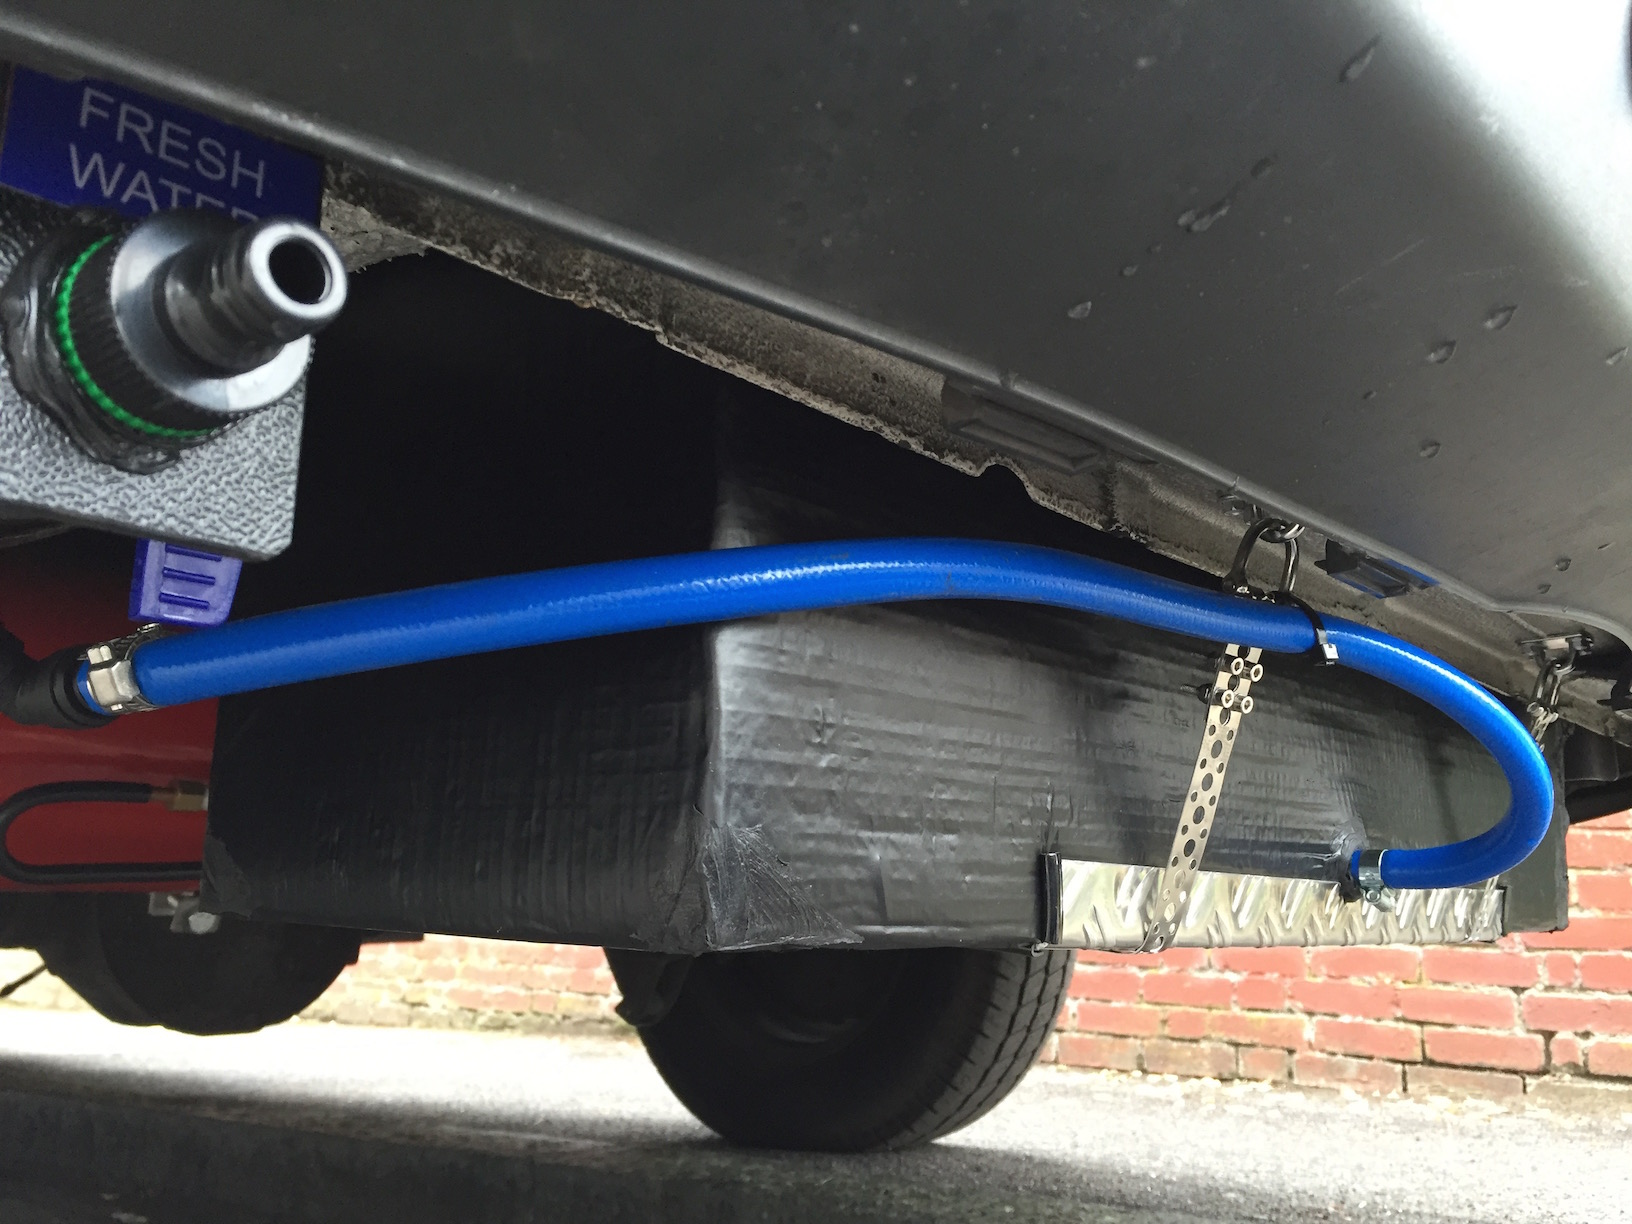 Vw Crafter Conversion Water Tanks And Plumbing Vw T4